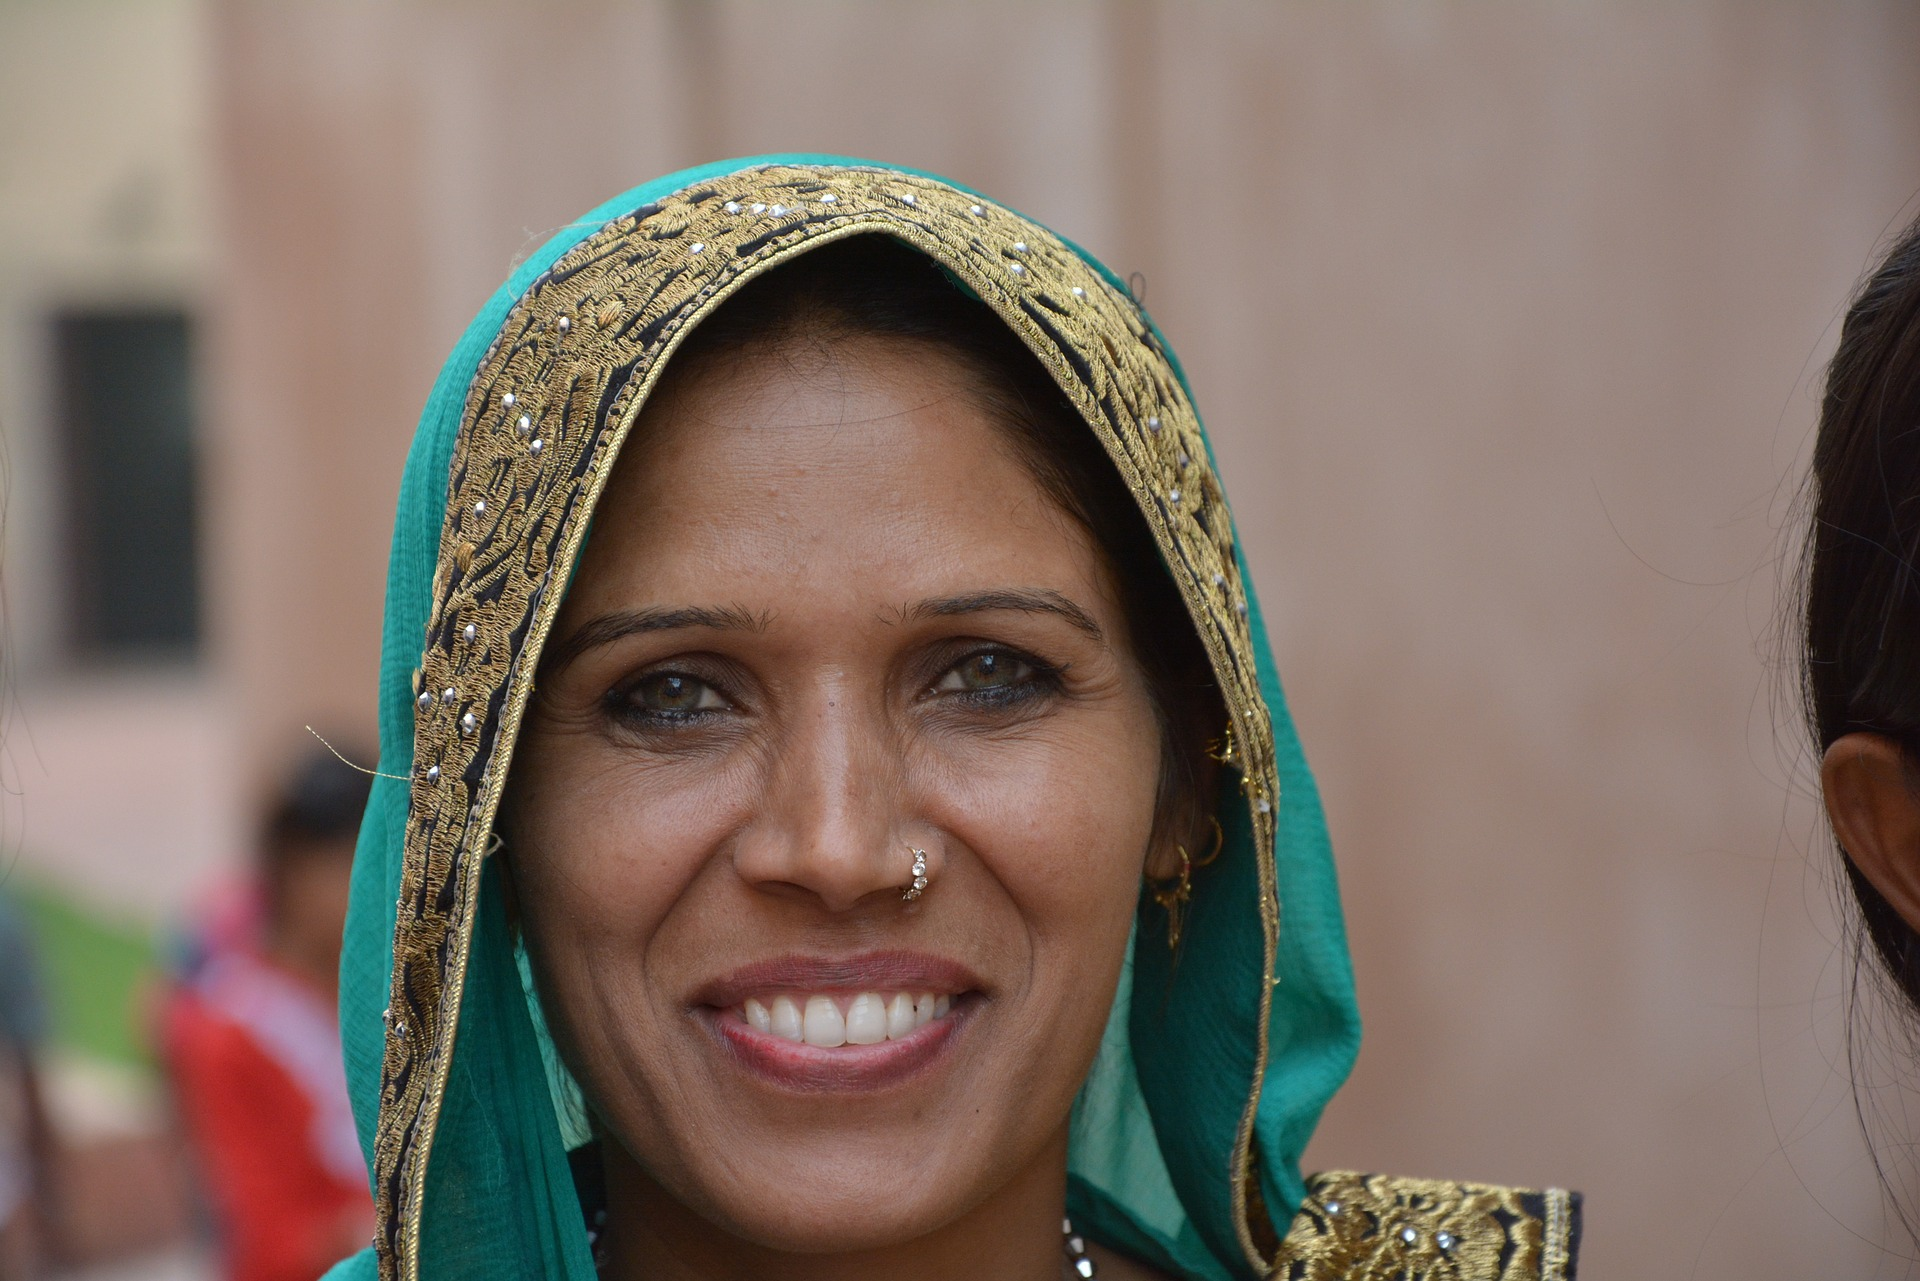 South Asian woman smiling in sari